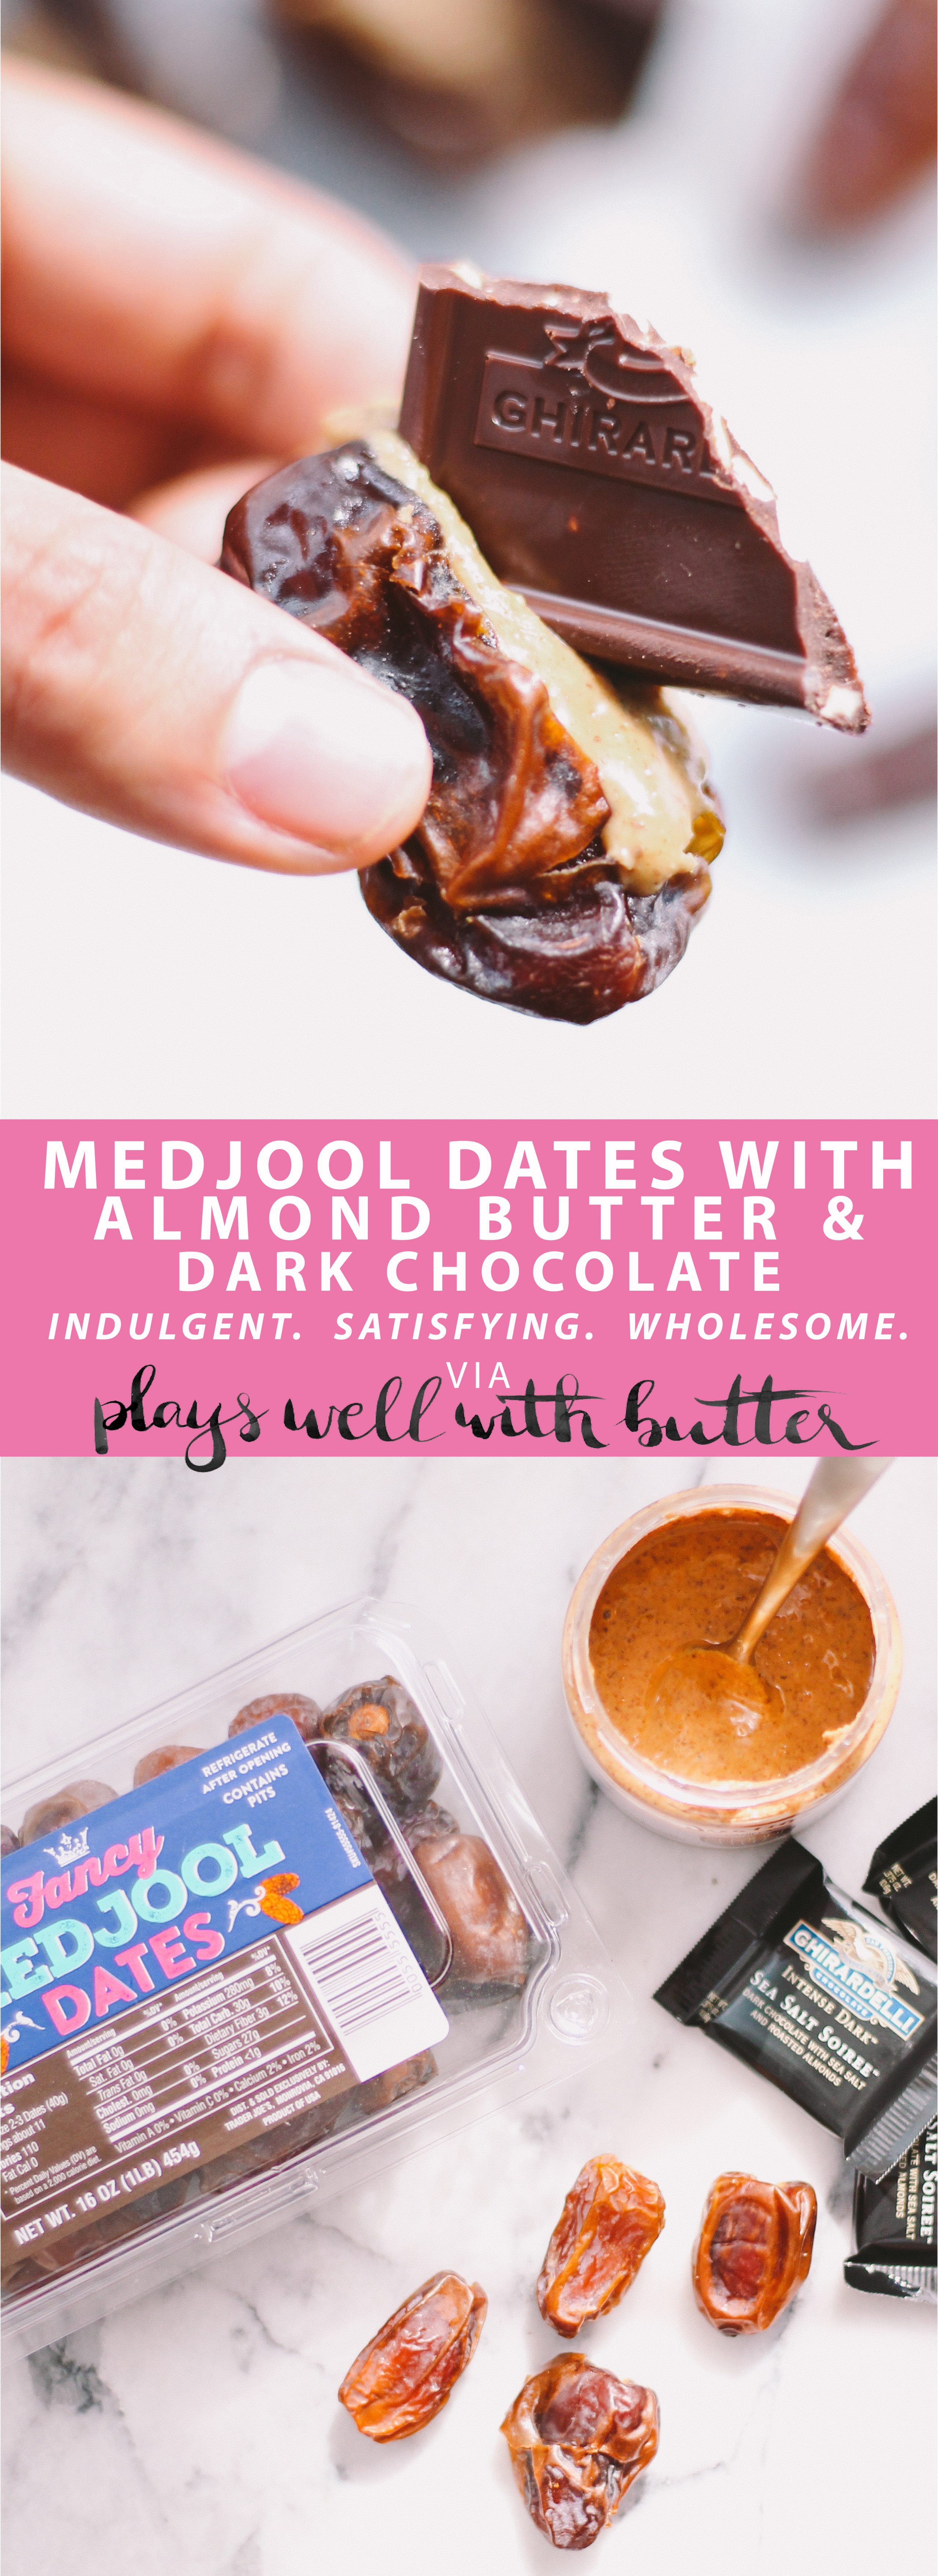 medjool dates with almond butter & dark chocolate via playswellwithbutter | a perfectly simple medjool date snack: medjool dates packed with creamy almond butter & a bittersweet piece of dark chocolate. just as satisfying as an indulgent candy, but made with completely natural & wholesome ingredients, this medjool date snack will absolutely become one of your favorites!